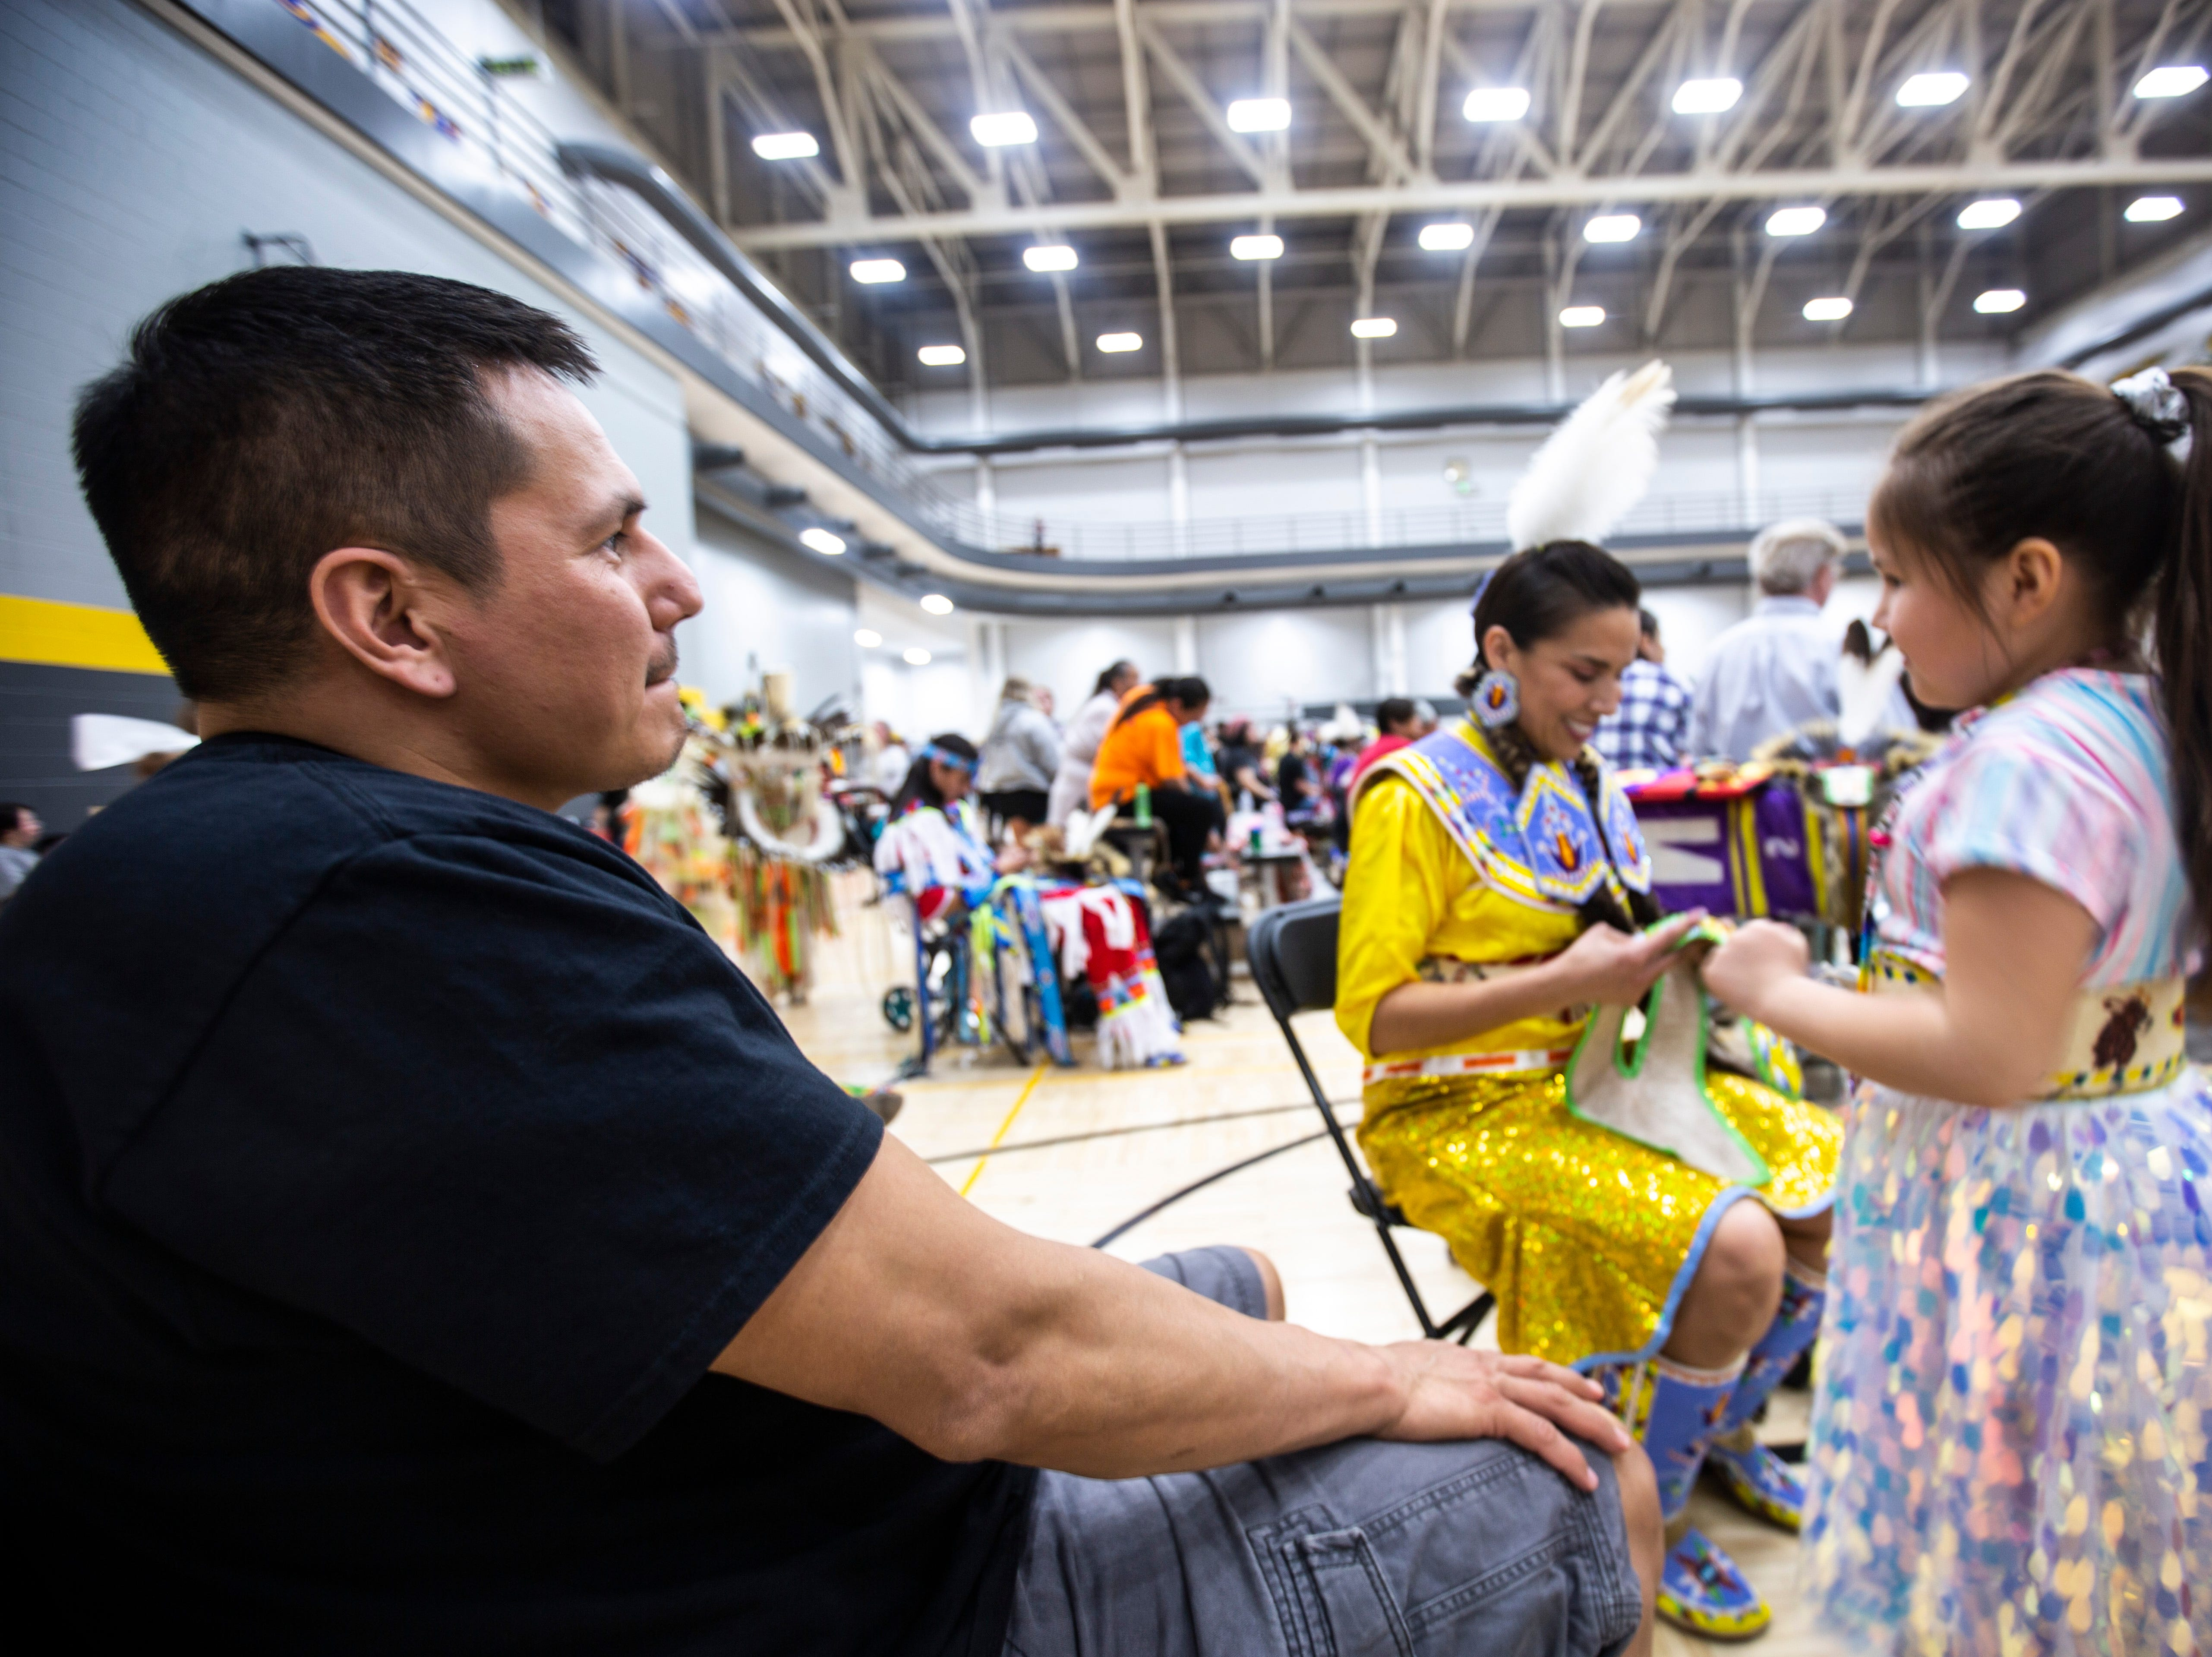 Tyler Lasley, of Tama, Iowa, watches as his wife Nahmi helps their daughter Tess, 6, get ready before a dance during the 25th annual University of Iowa powwow, Saturday, April 20, 2019, at the Field House on the University of Iowa campus in Iowa City, Iowa. The family has been attending the powwow every year since is first began.